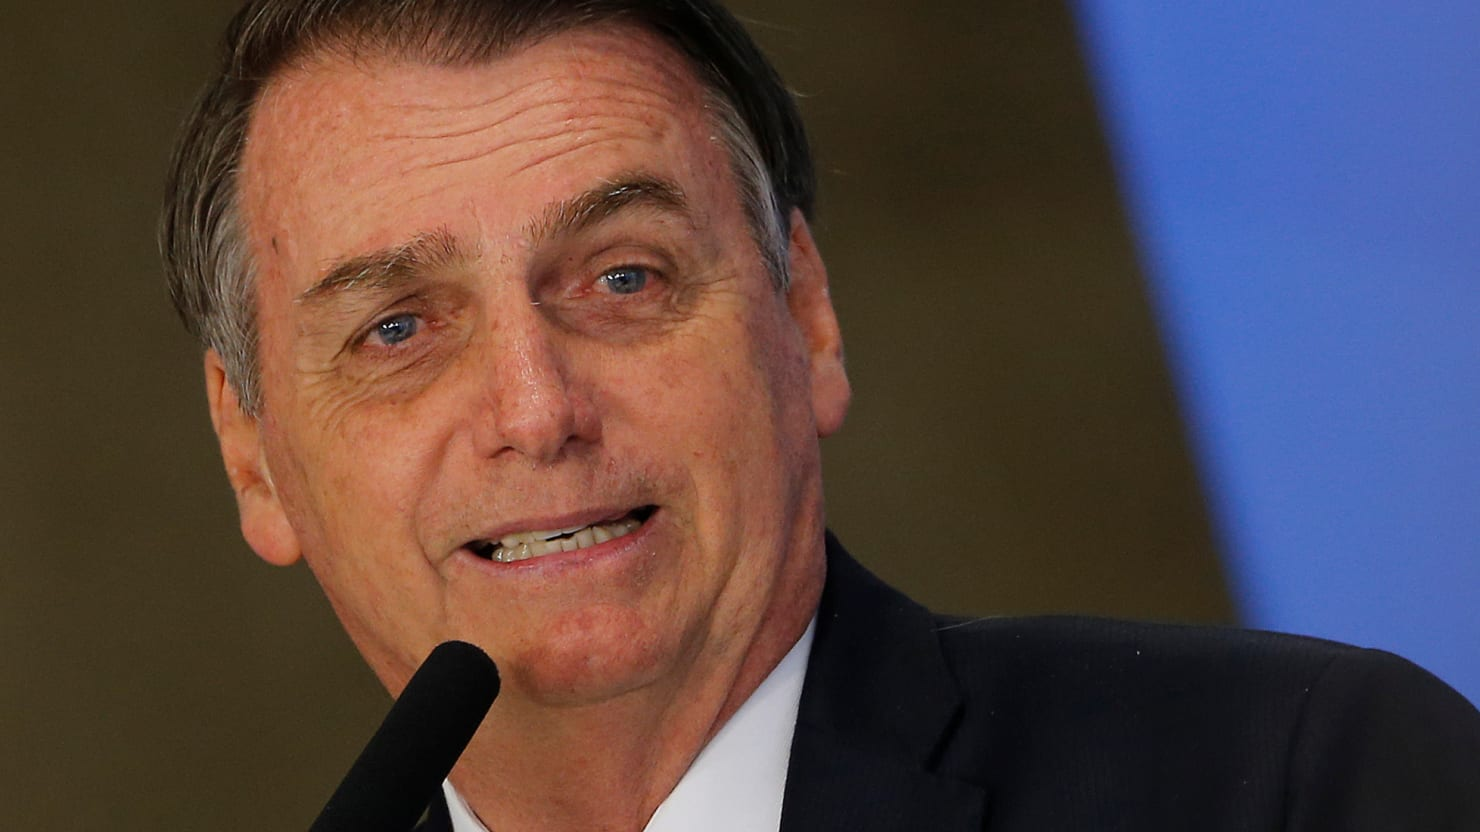 Brazilian President Jair Bolsonaro: This Country Must Not Become a 'Gay Tourism Paradise'